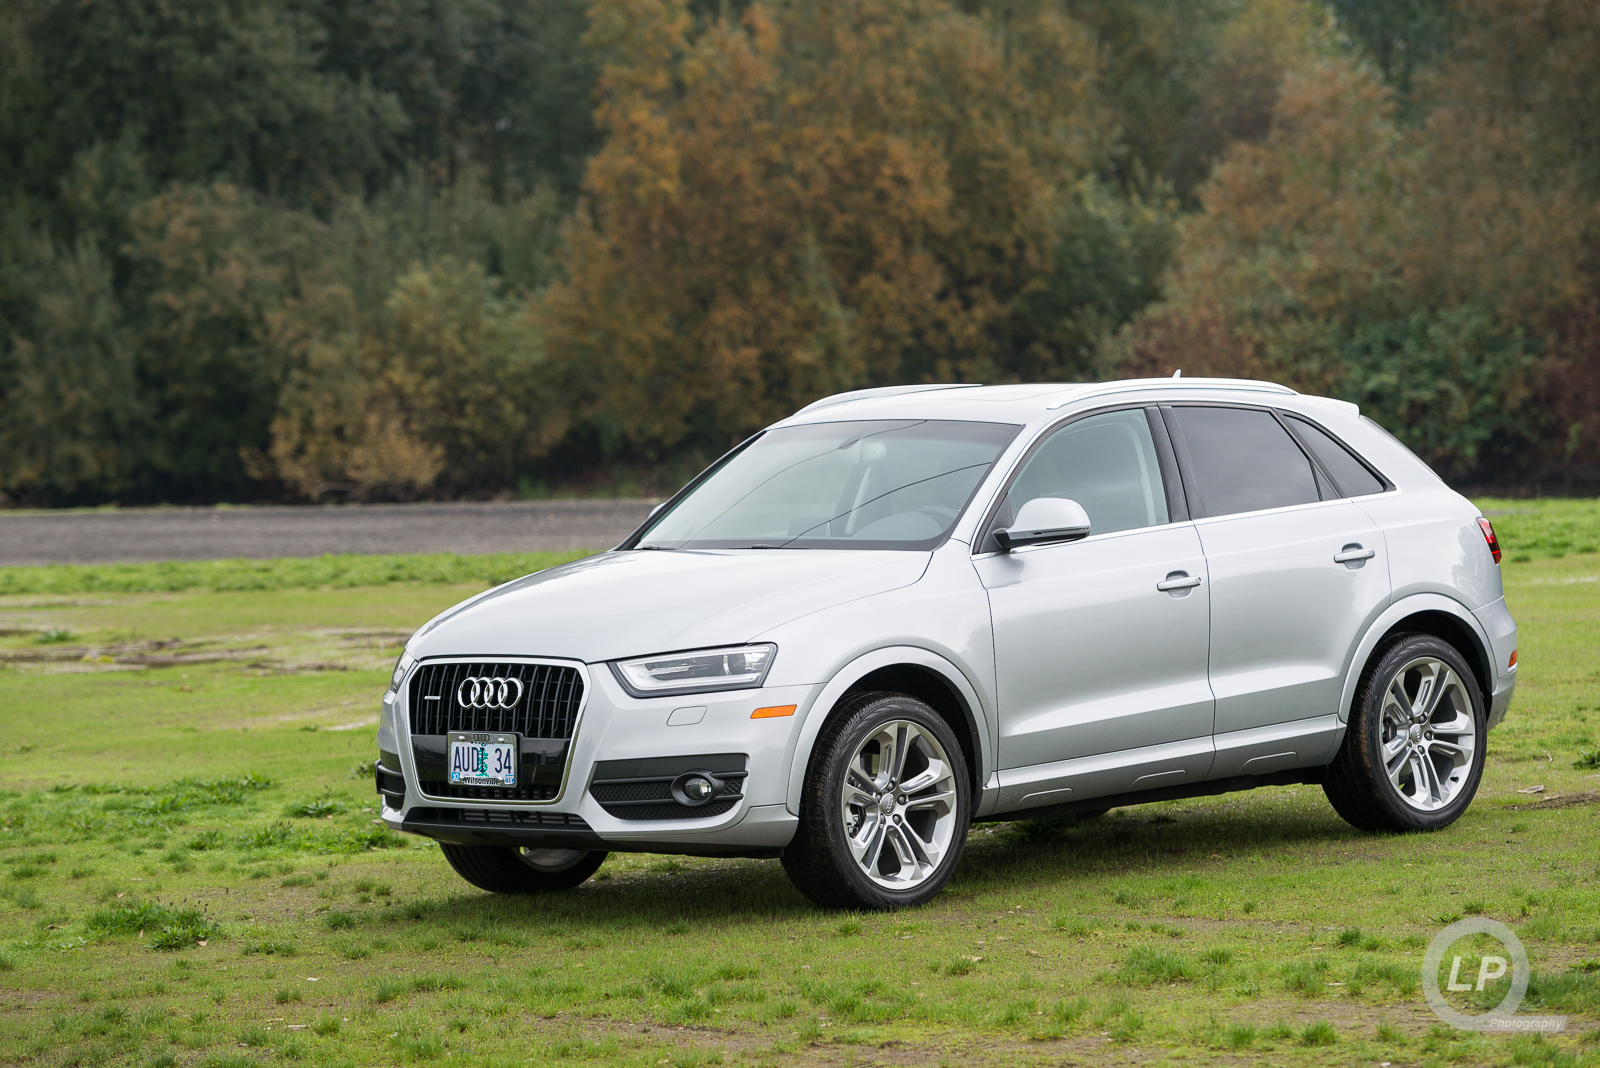 Audi Q3 waiting in the grass while I shoot photos